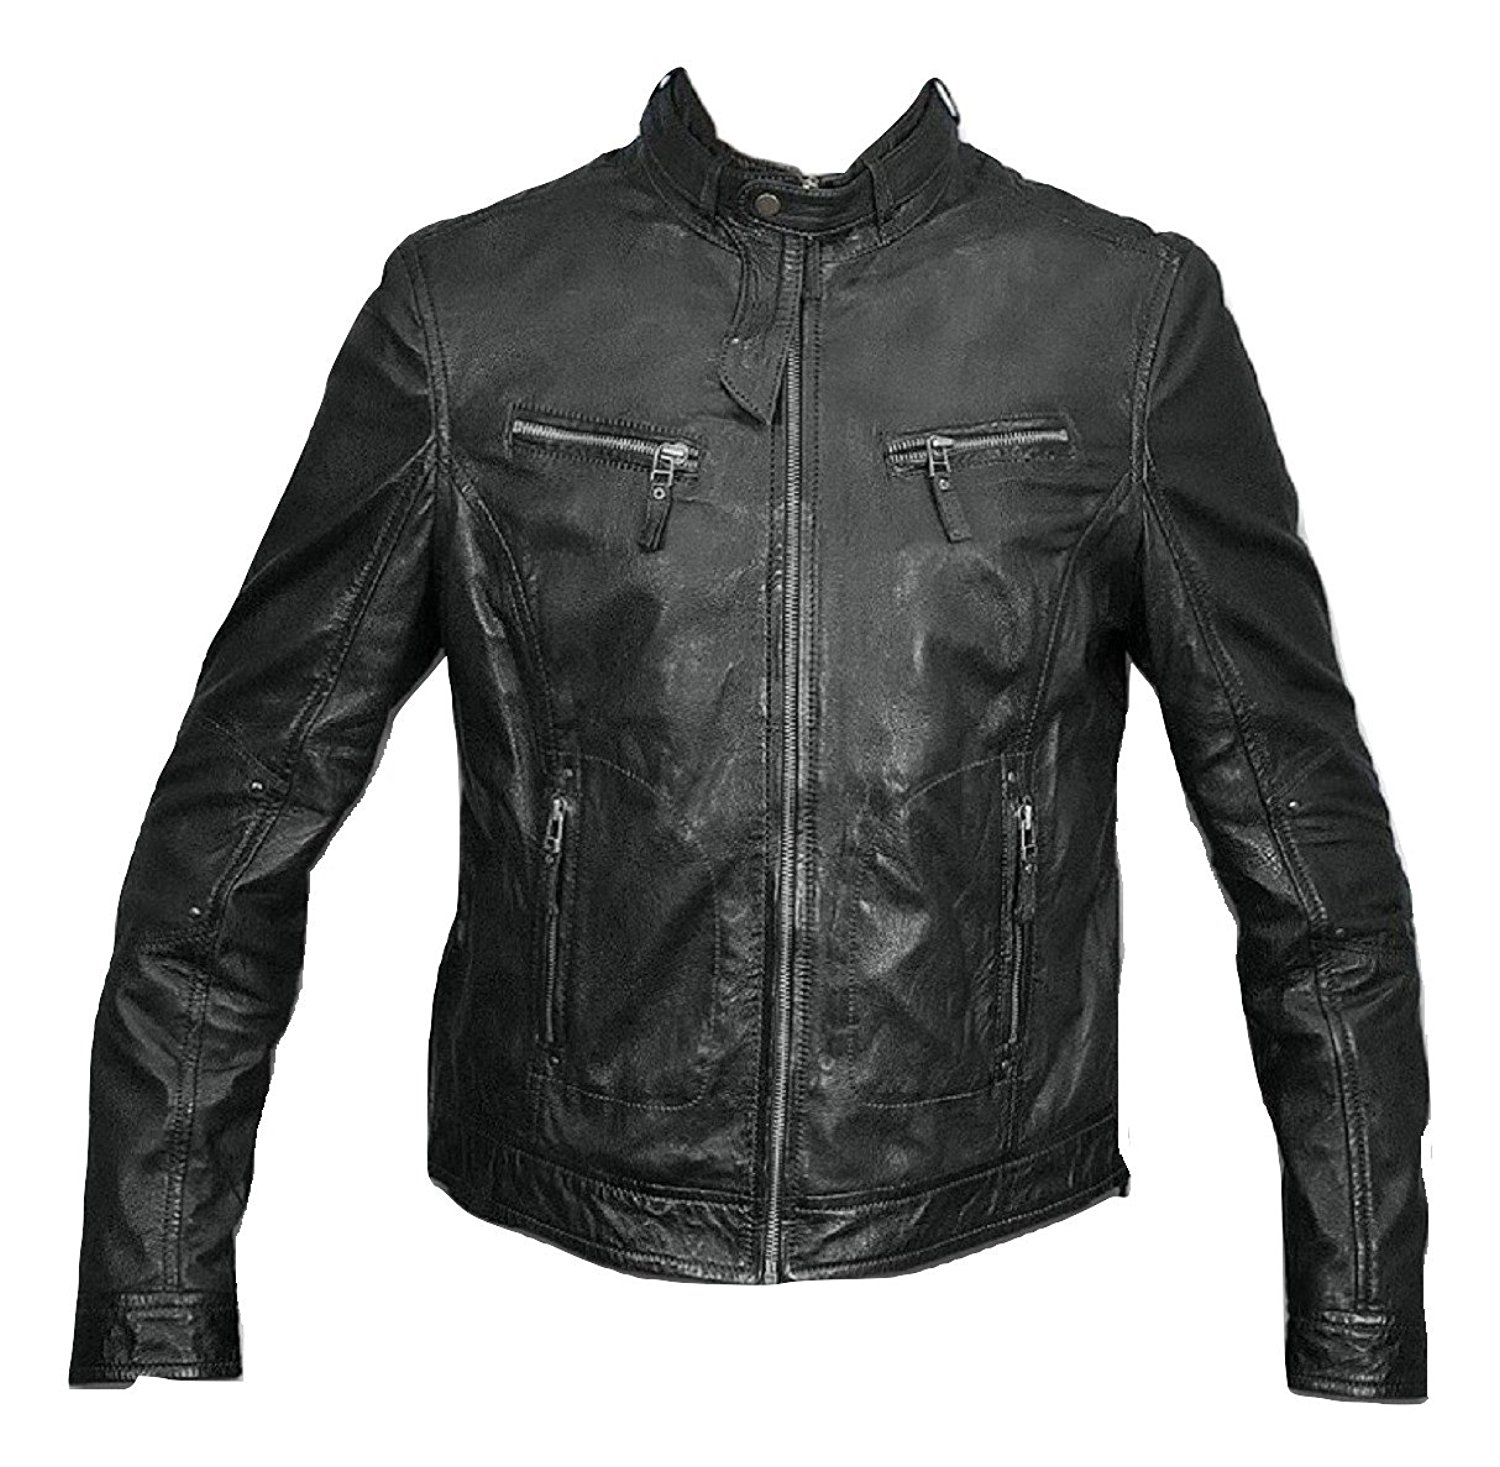 Bestzo Women's Fashion Jacket Lamb Leather Black XS